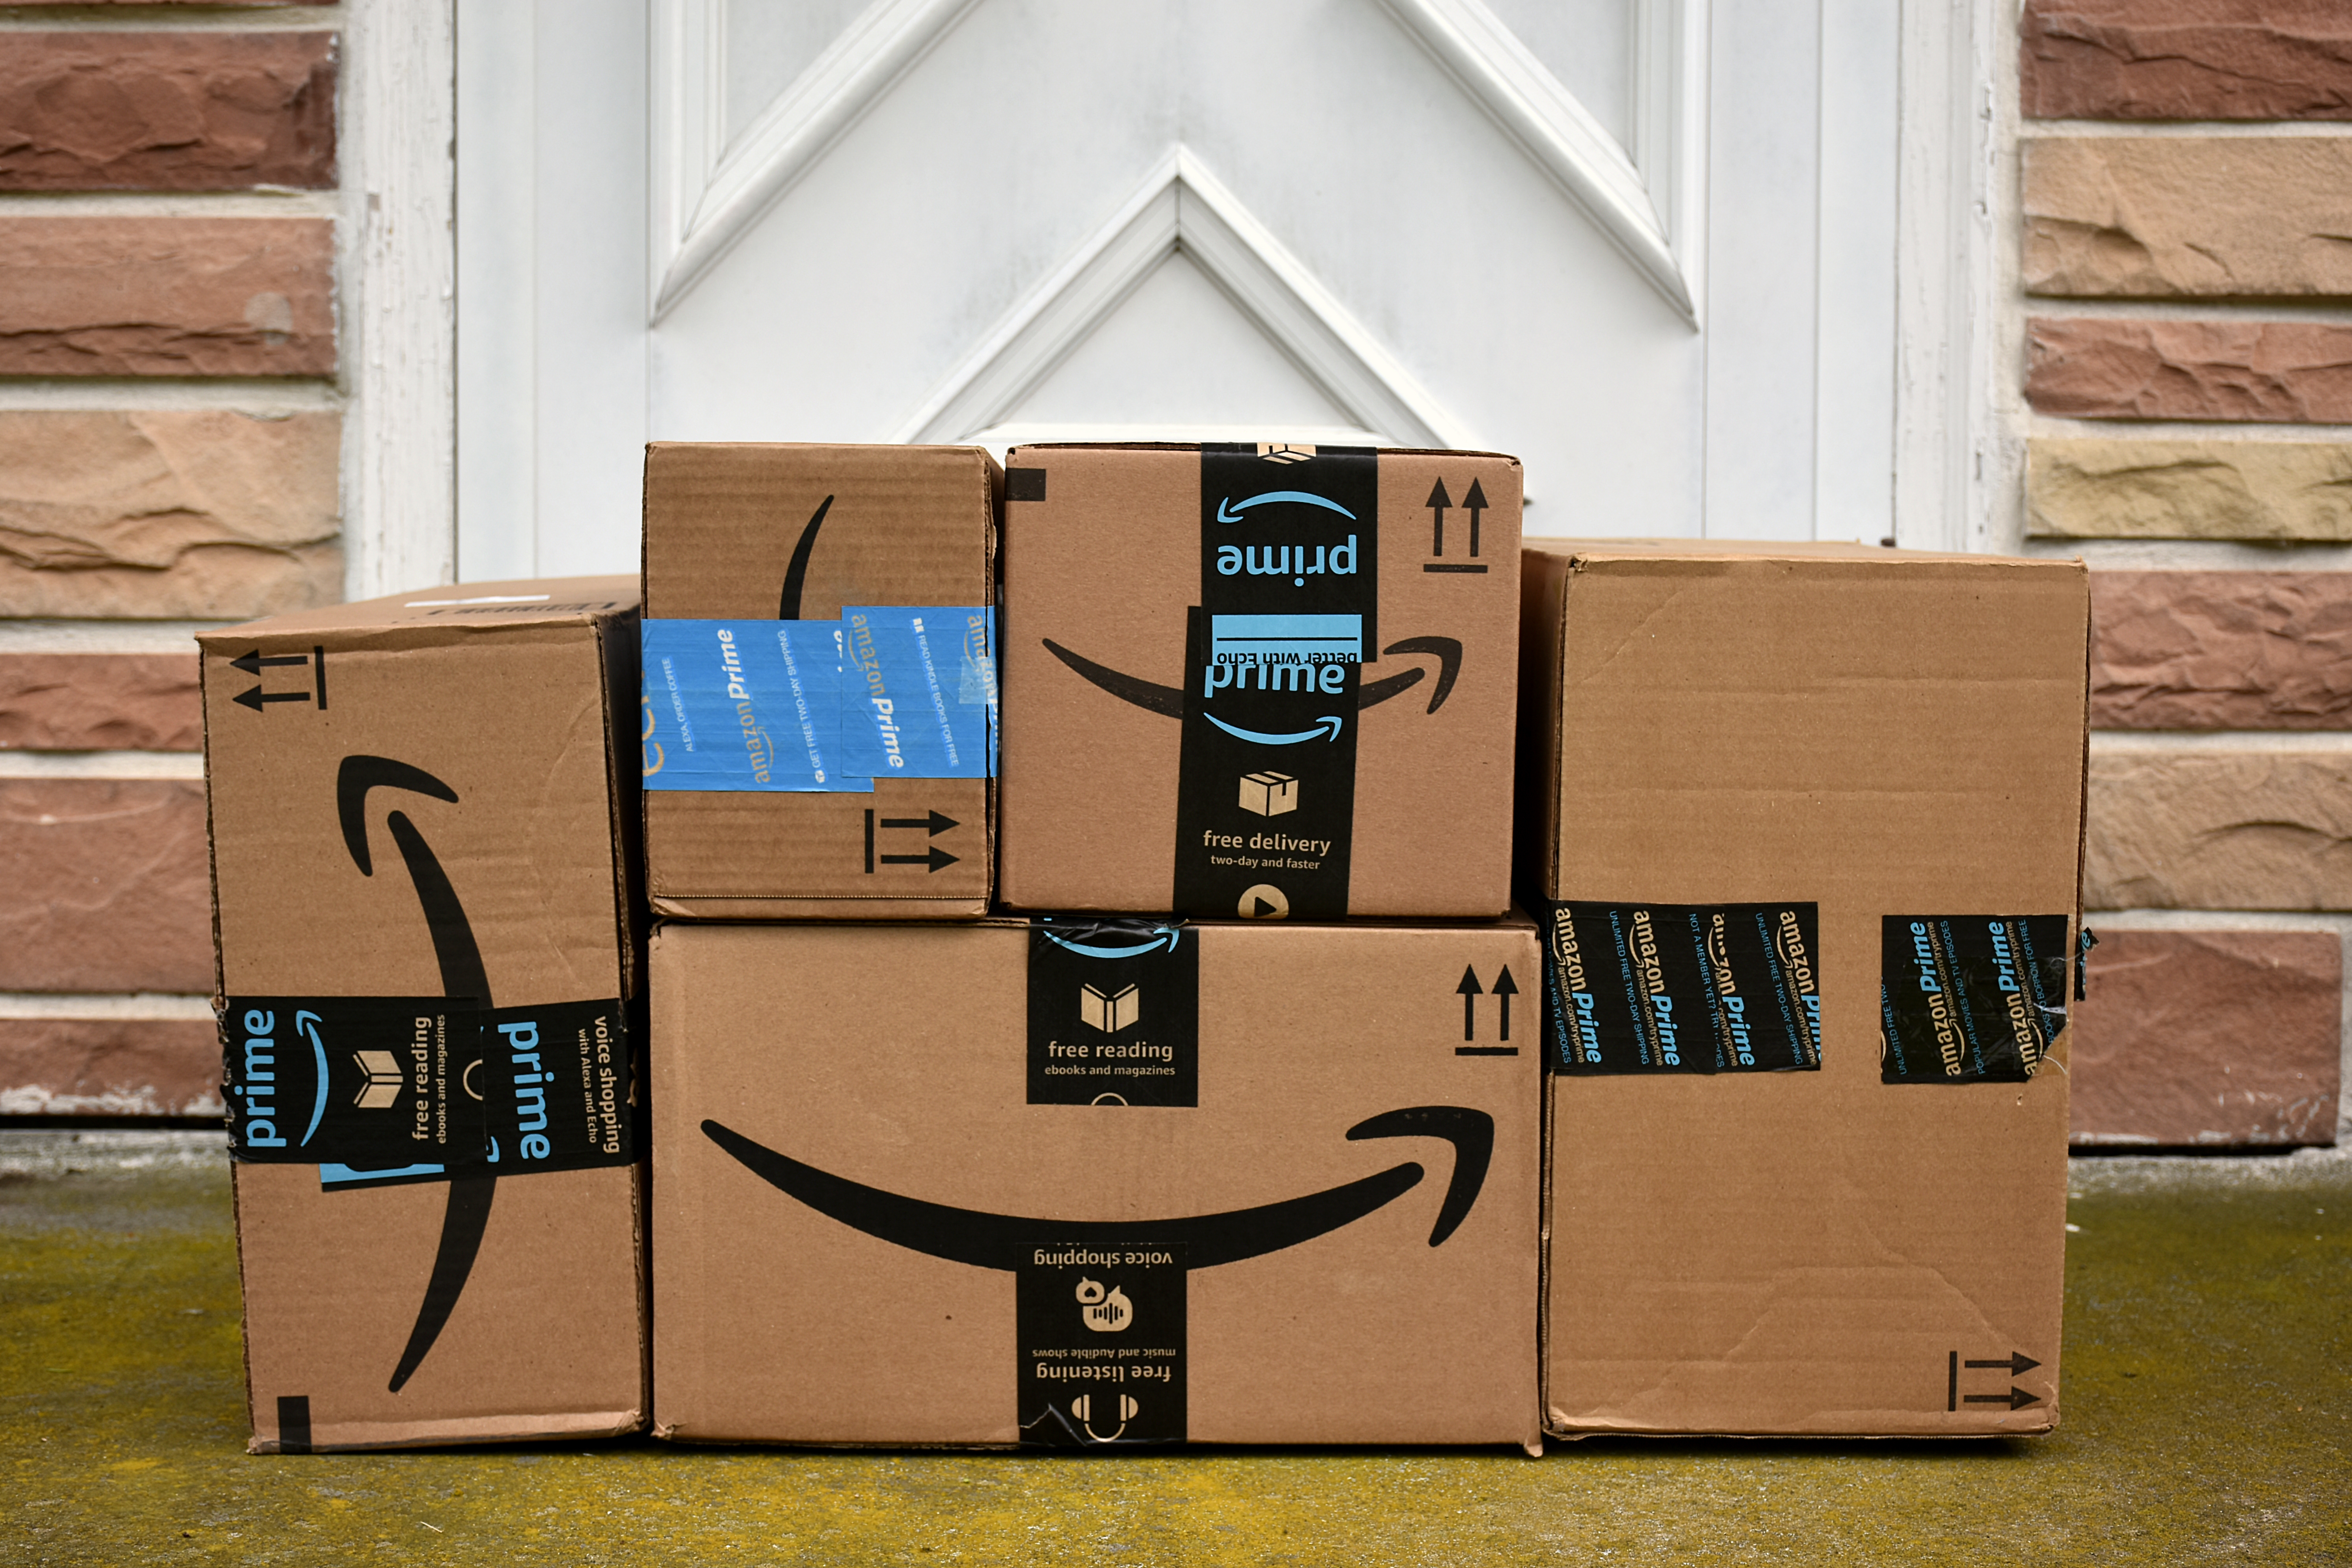 Amazon Unwanted Packages Anonymous Sender Reports | Apartment Therapy